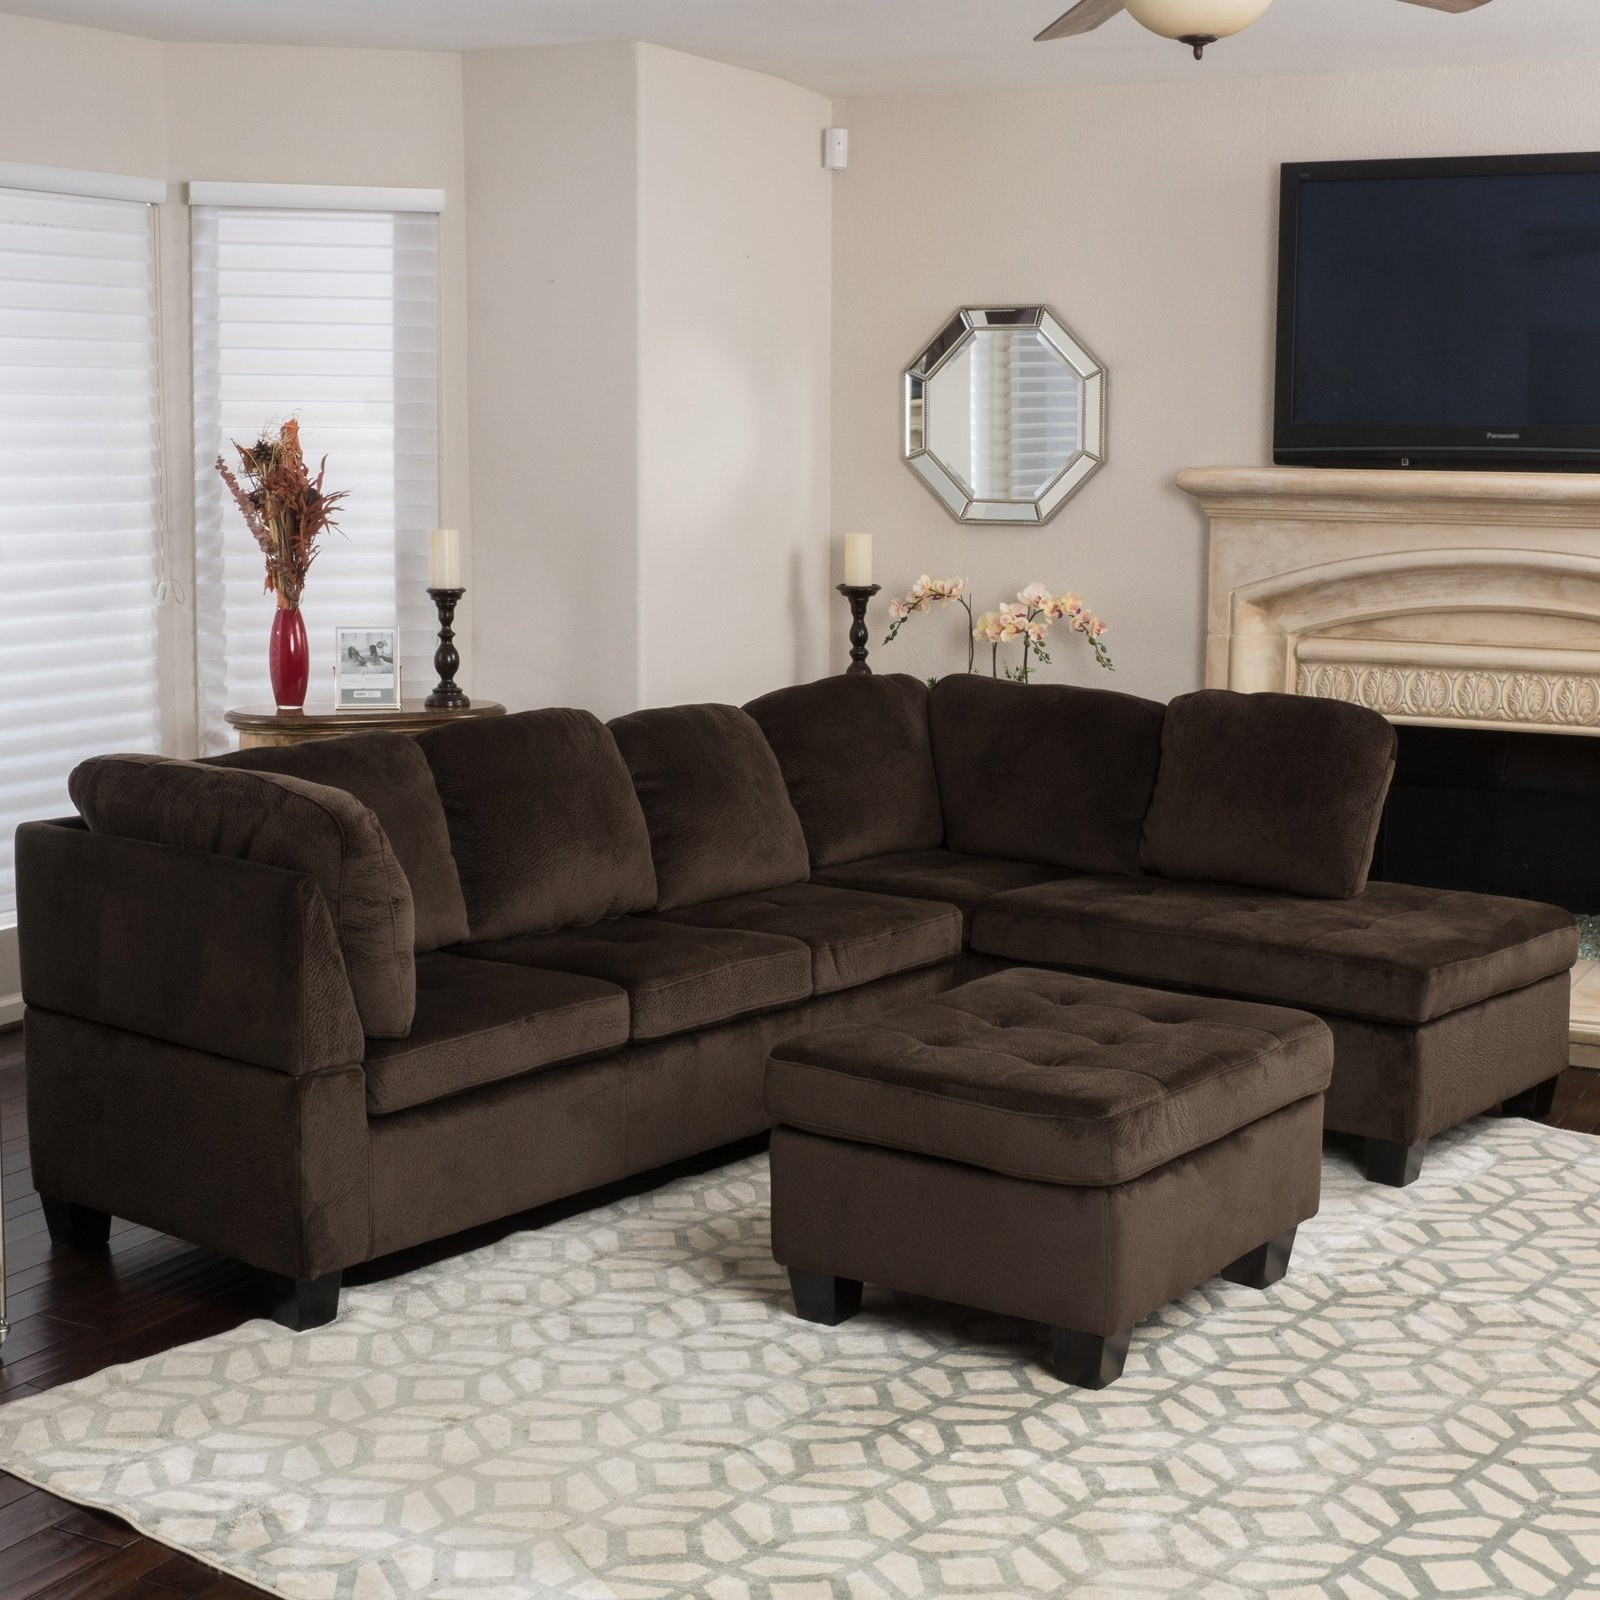 3 Piece Sectional Sofa Dimensions | Baci Living Room Pertaining To Malbry Point 3 Piece Sectionals With Raf Chaise (View 19 of 25)